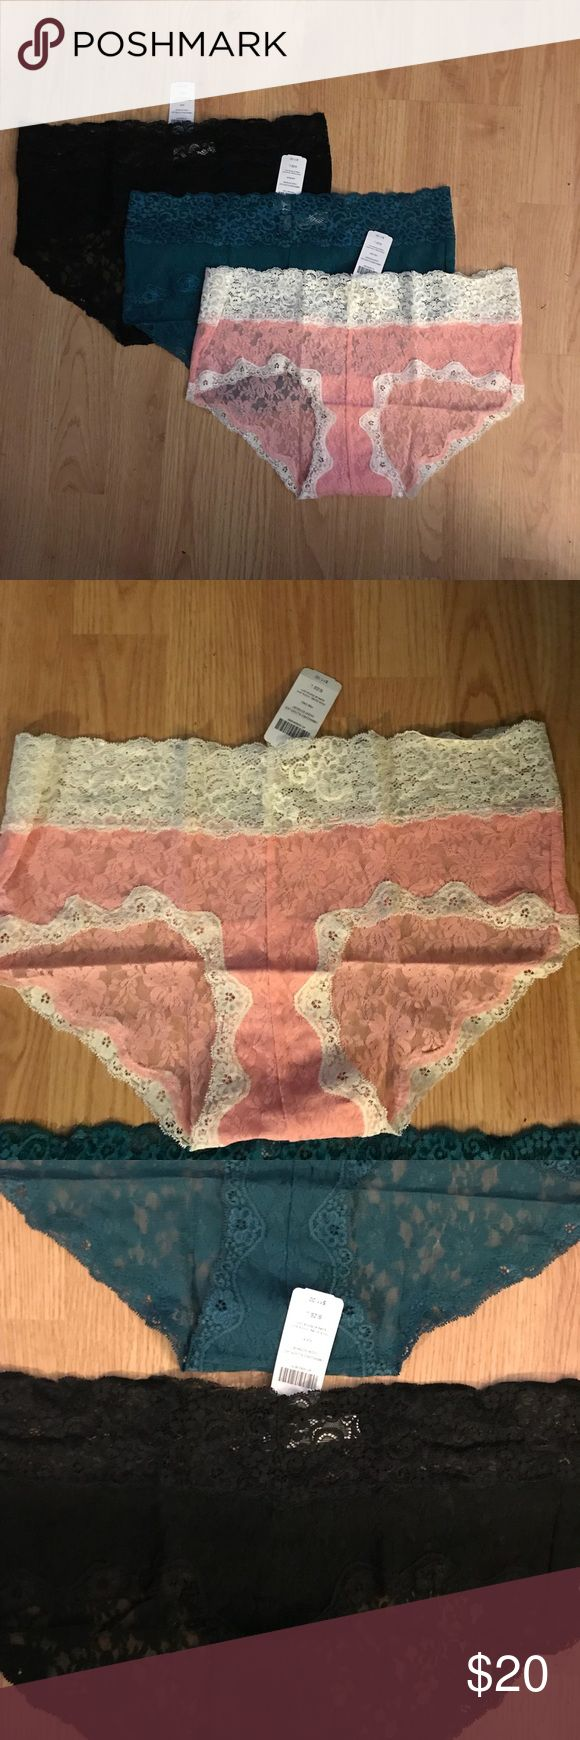 NWT Soma 3 Panties Large Final Price This listing is for all three NWT Soma Embraceable Allover Lace Cheeky Boyshort Panty. Colors are Pink Icing, Black and Gem Green.  They are perfect for Valentines Day! No trades. Soma Intimates & Sleepwear Panties